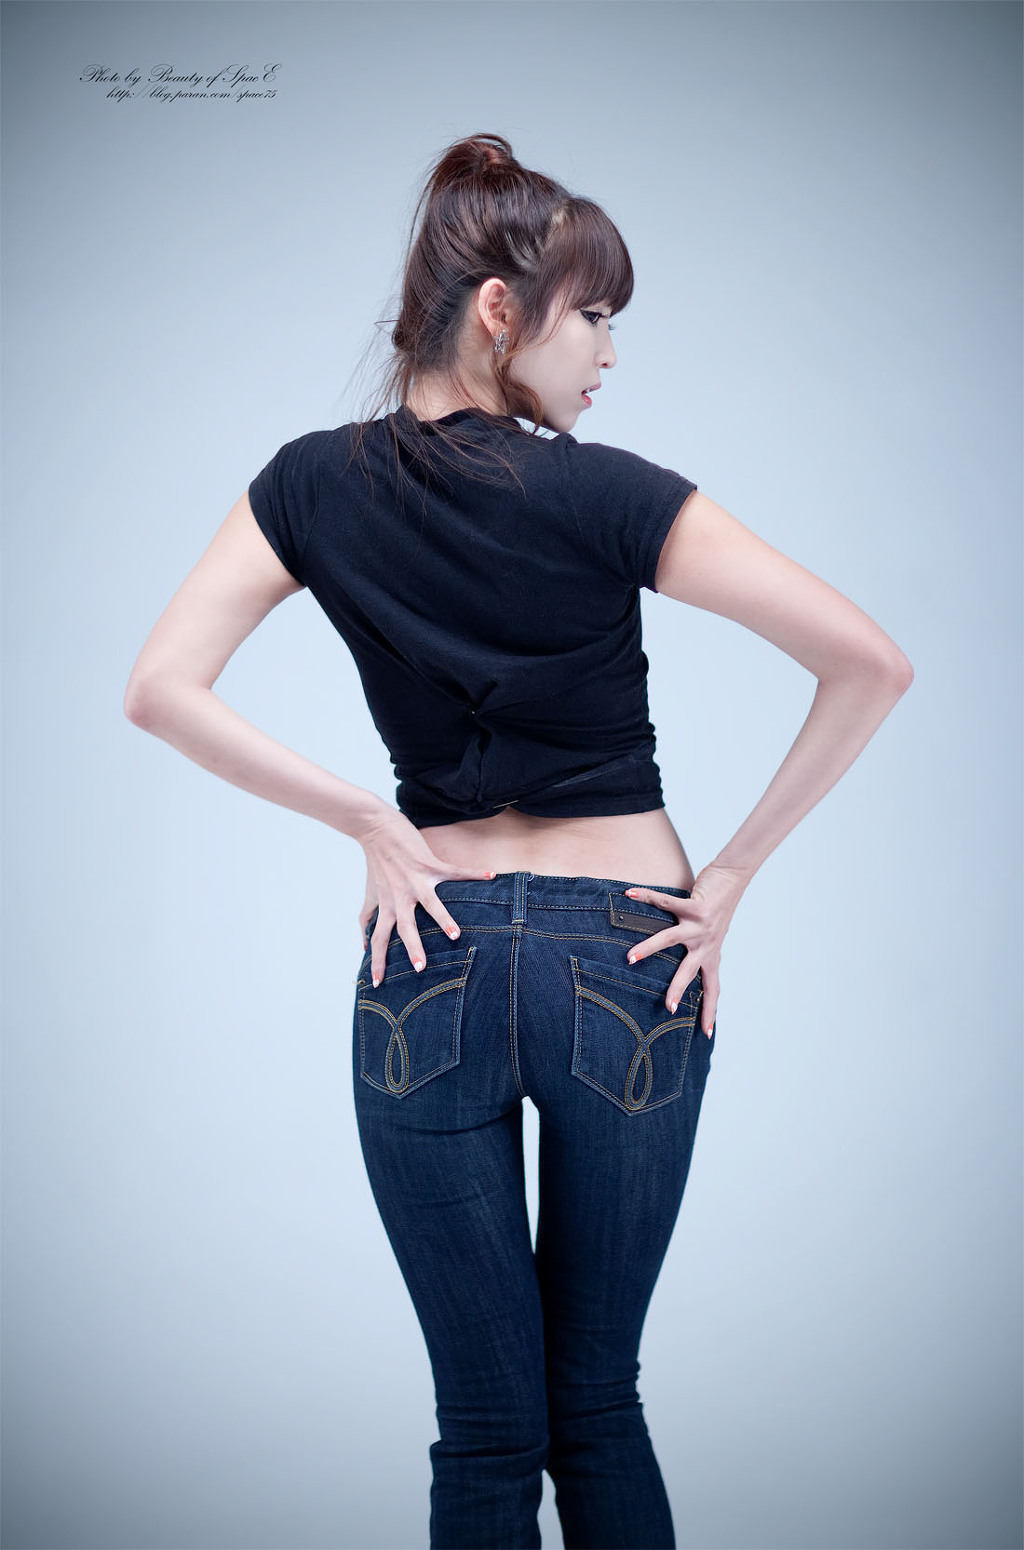 Cute Asian Girl Lee Eun Hye In Black Top And Jeans-2448